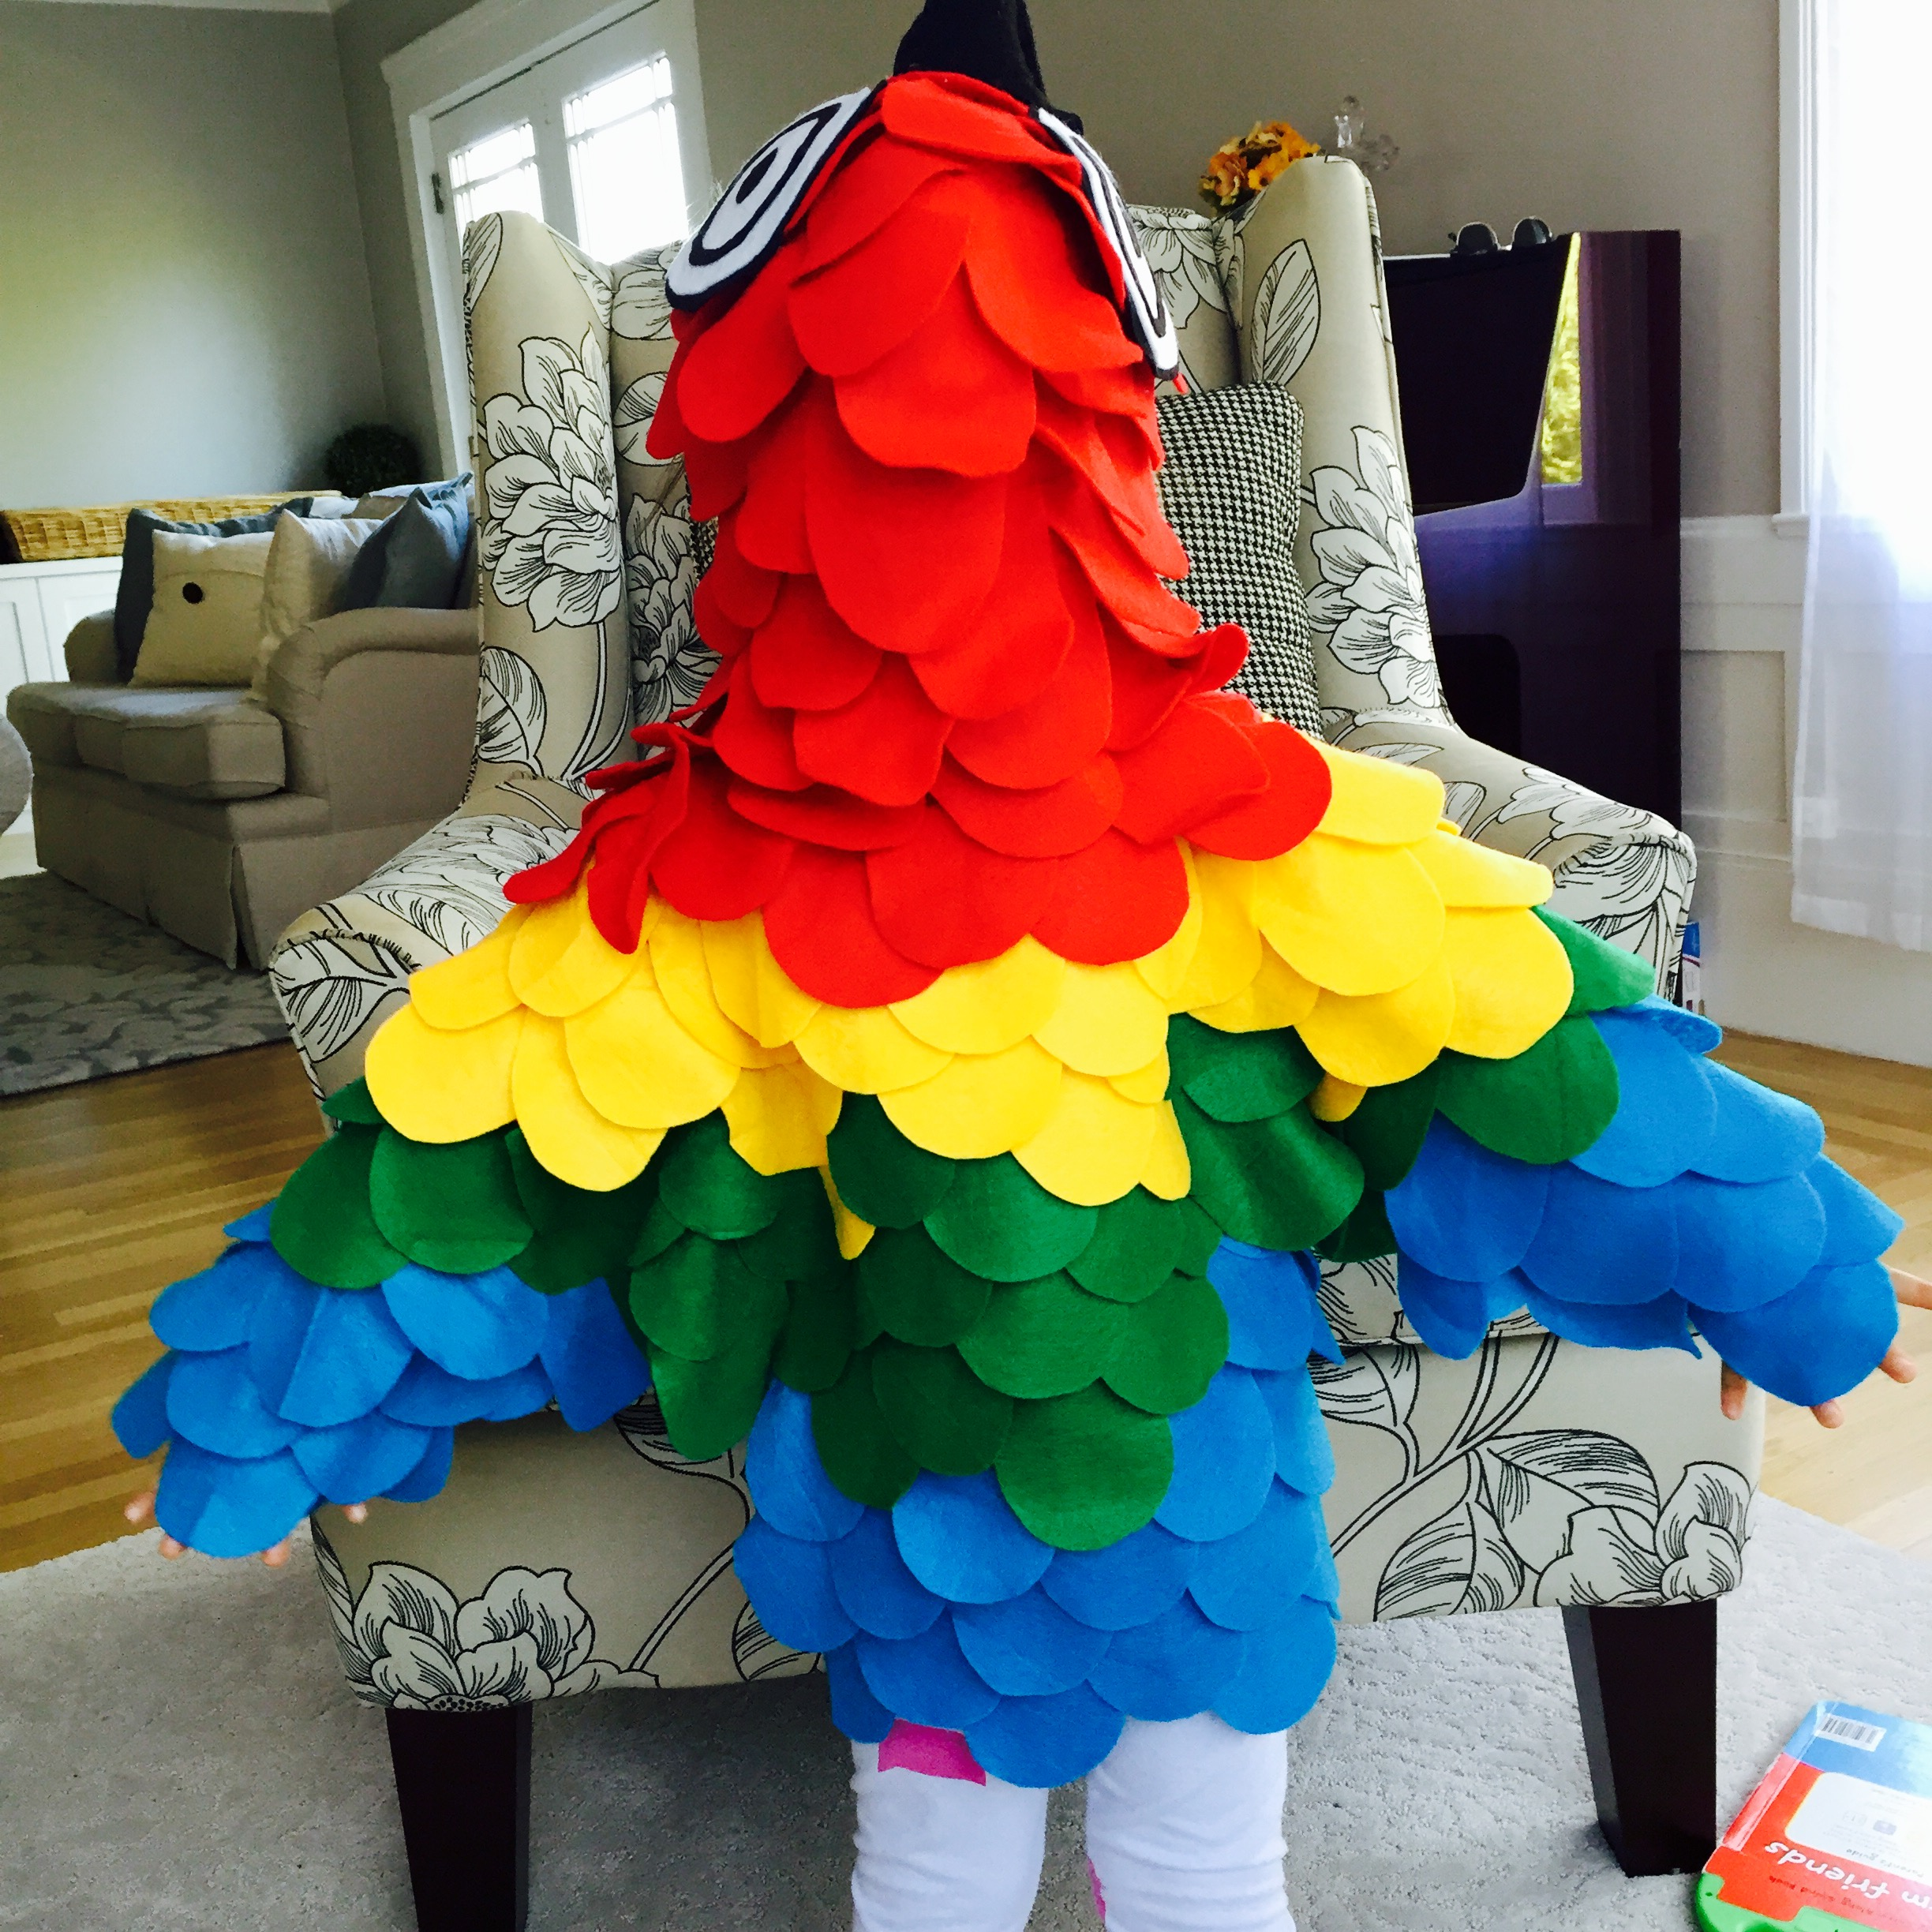 homemade kids halloween costumes homemade kids halloween costumes ... & Easy Homemade Halloween Costumes for Kids - Miss Bizi Bee